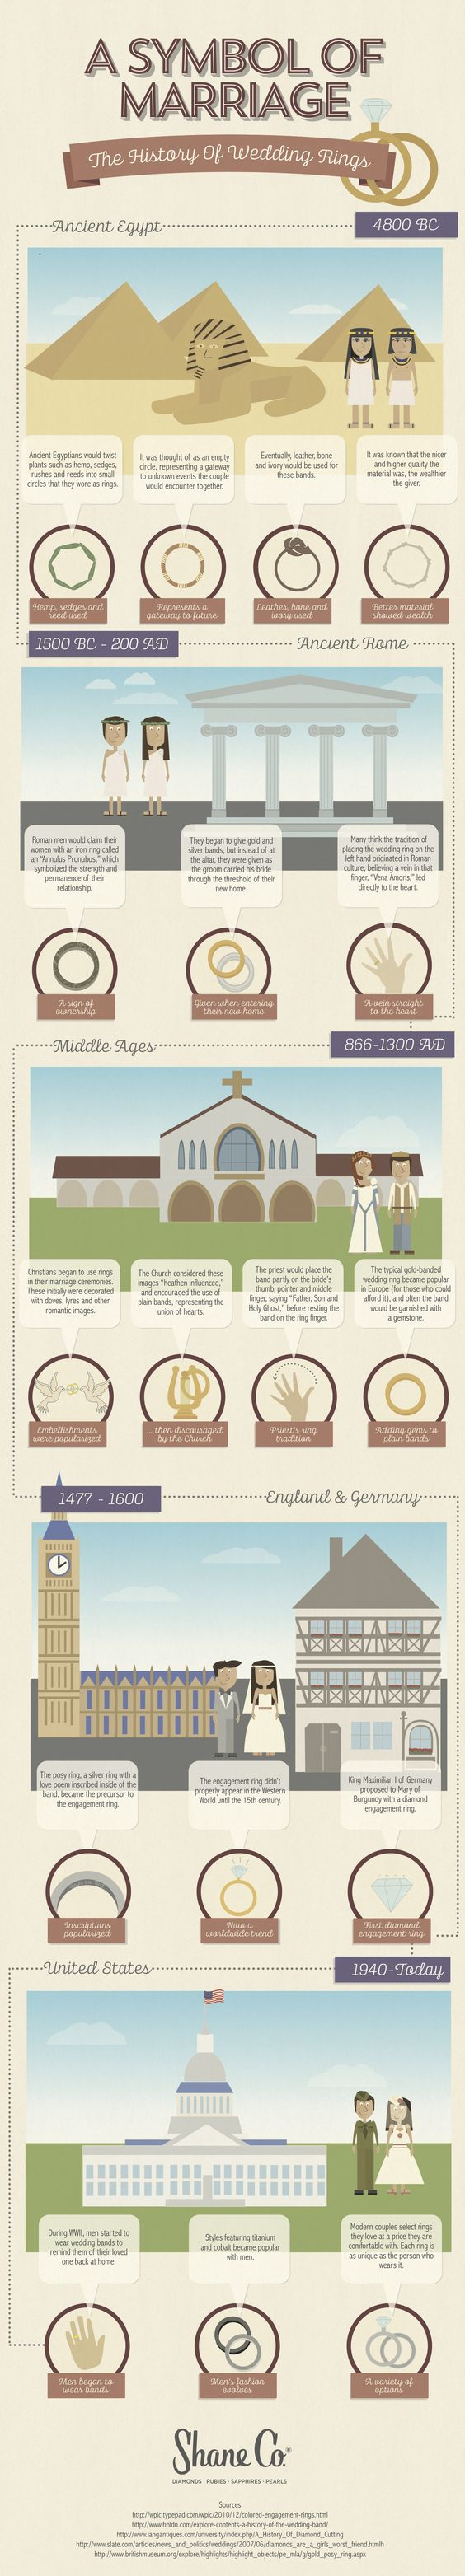 History Of Wedding Rings #Infographic #Wedding #Rings